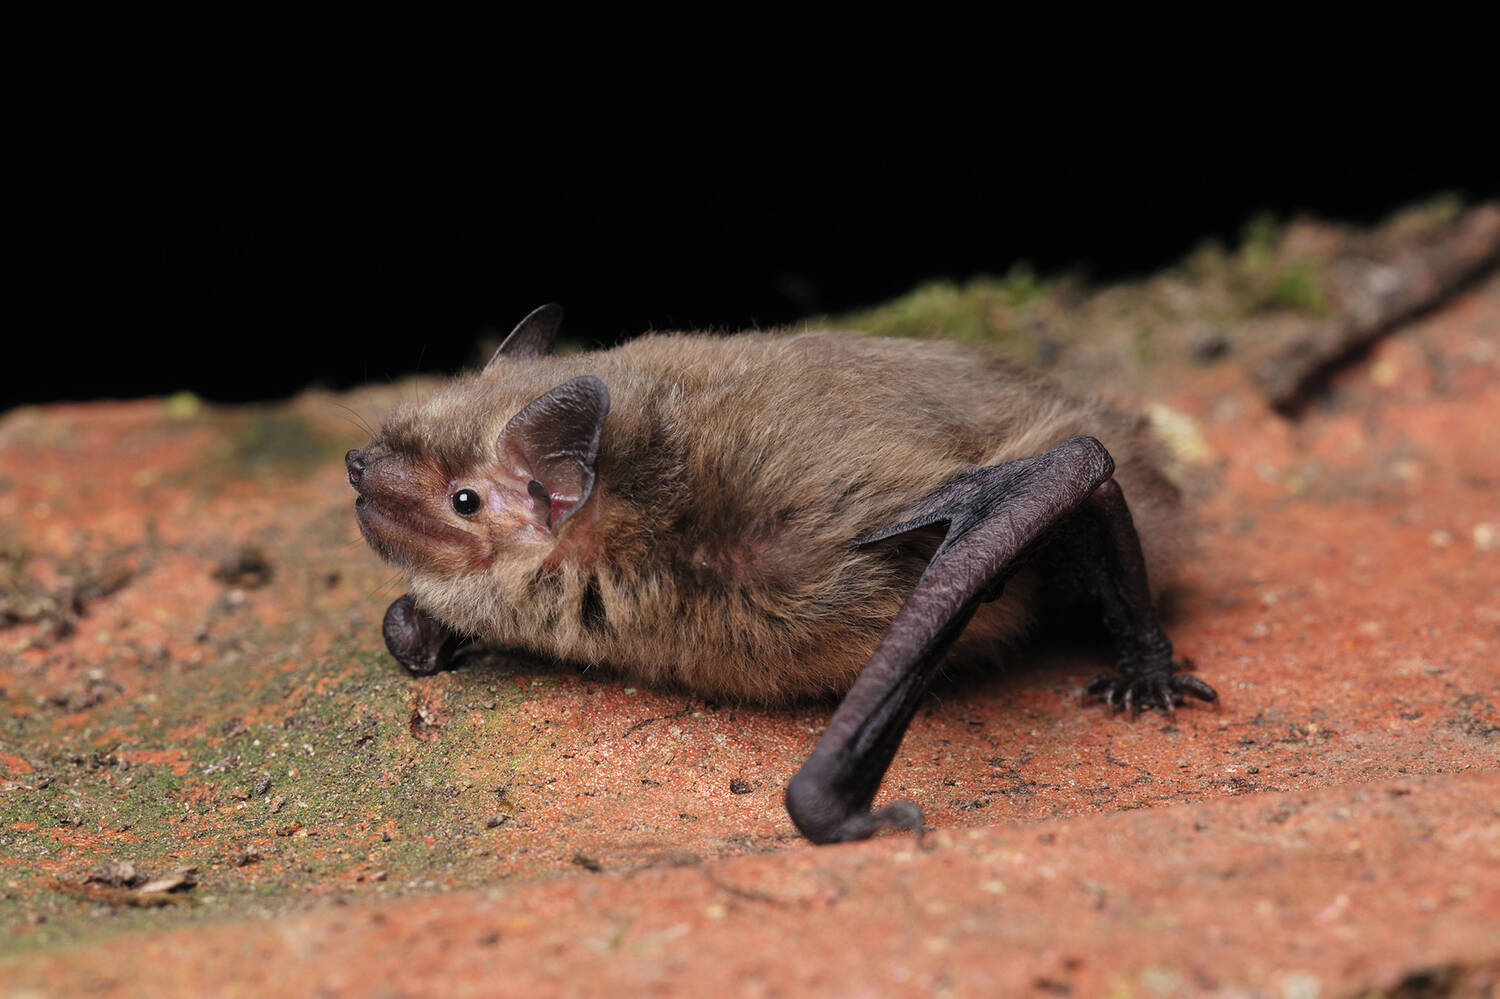 A pipistrelle bat at Threave sits on a stone surface, its wings folded in.